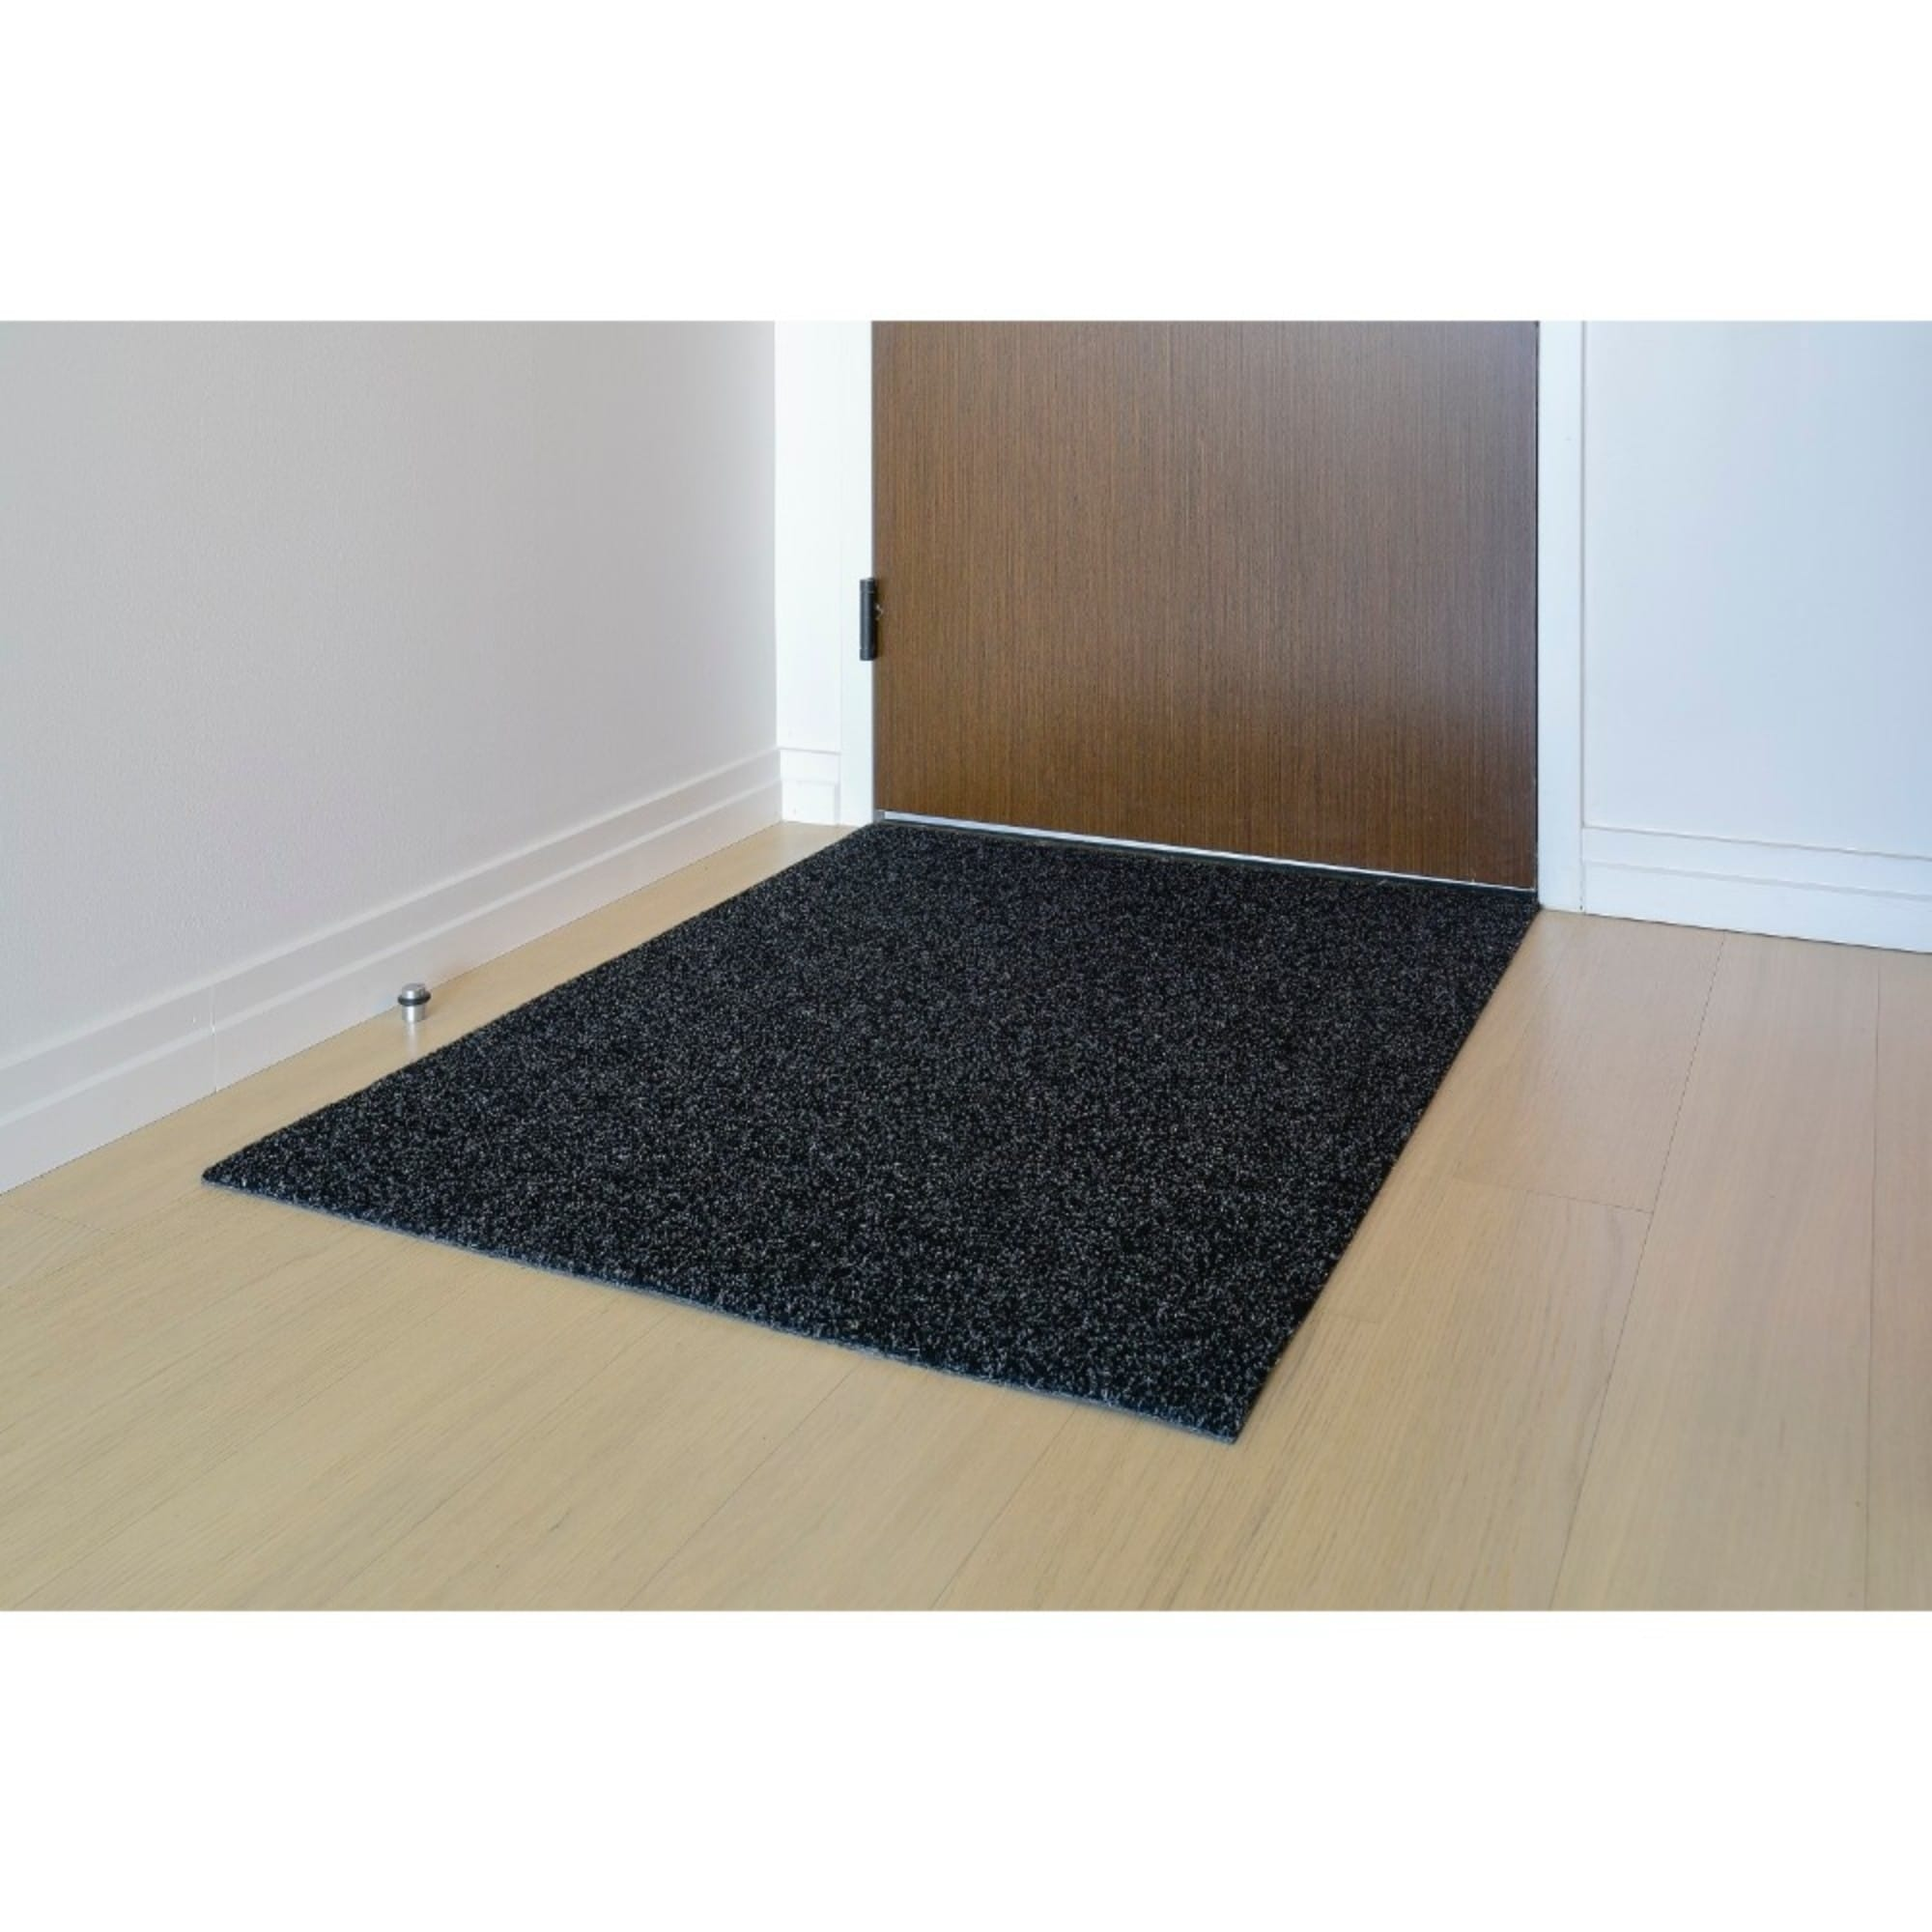 brush plain door coco x depot the p mats mat natural home in floor